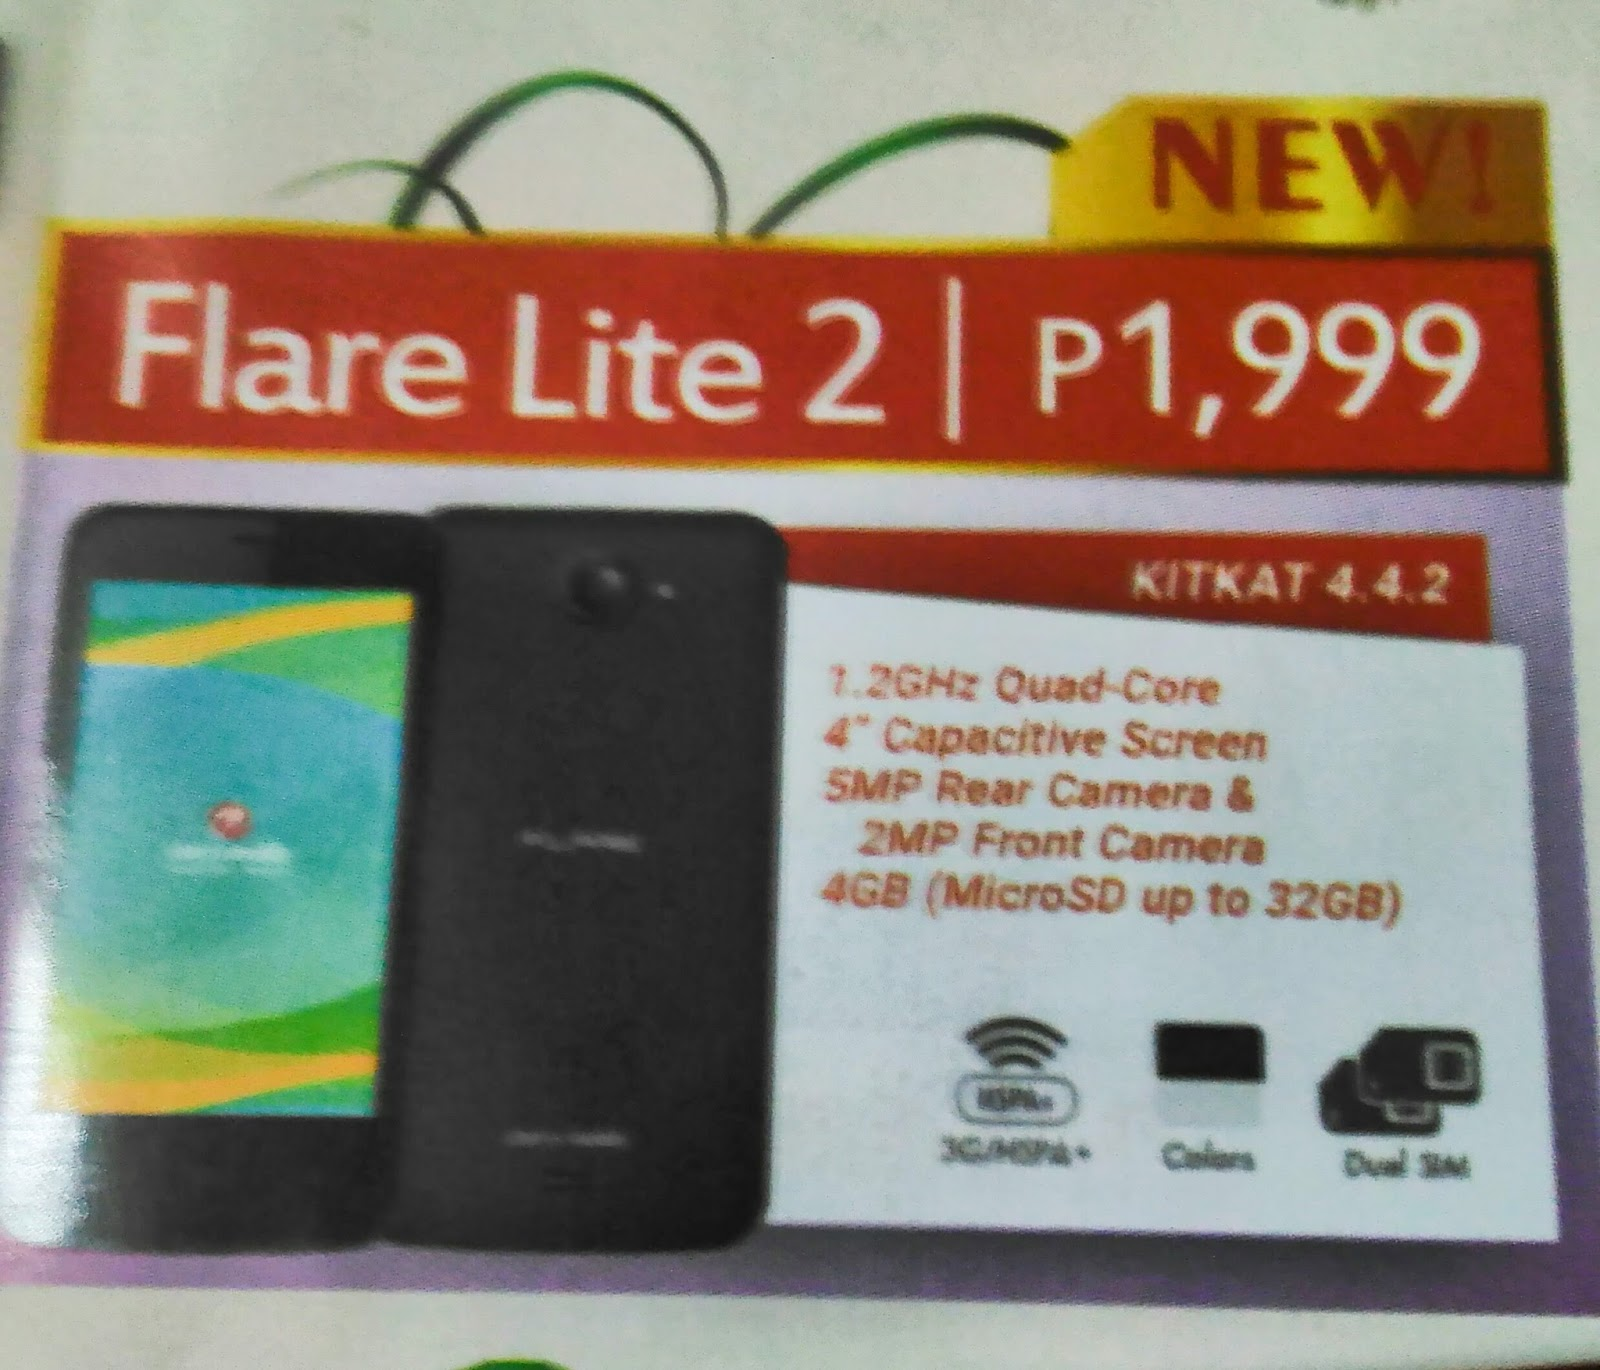 Cherry mobile introduces new affordable flares with flare j1 and flare